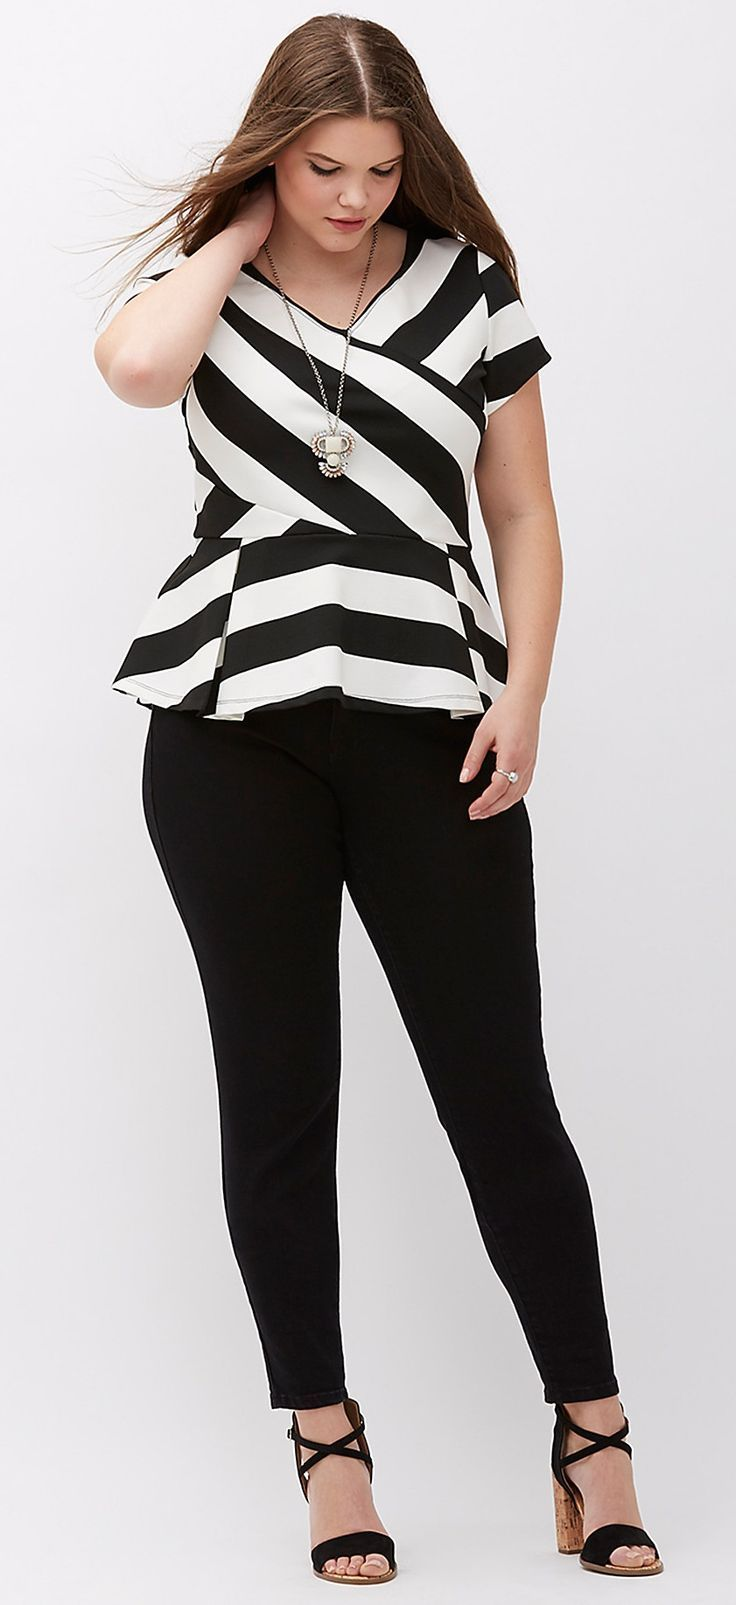 cool Lane Bryant - Lane Bryant Striped Peplum Top by http://www.globalfashionista.xyz/plus-size-fashion/lane-bryant-lane-bryant-striped-peplum-top/